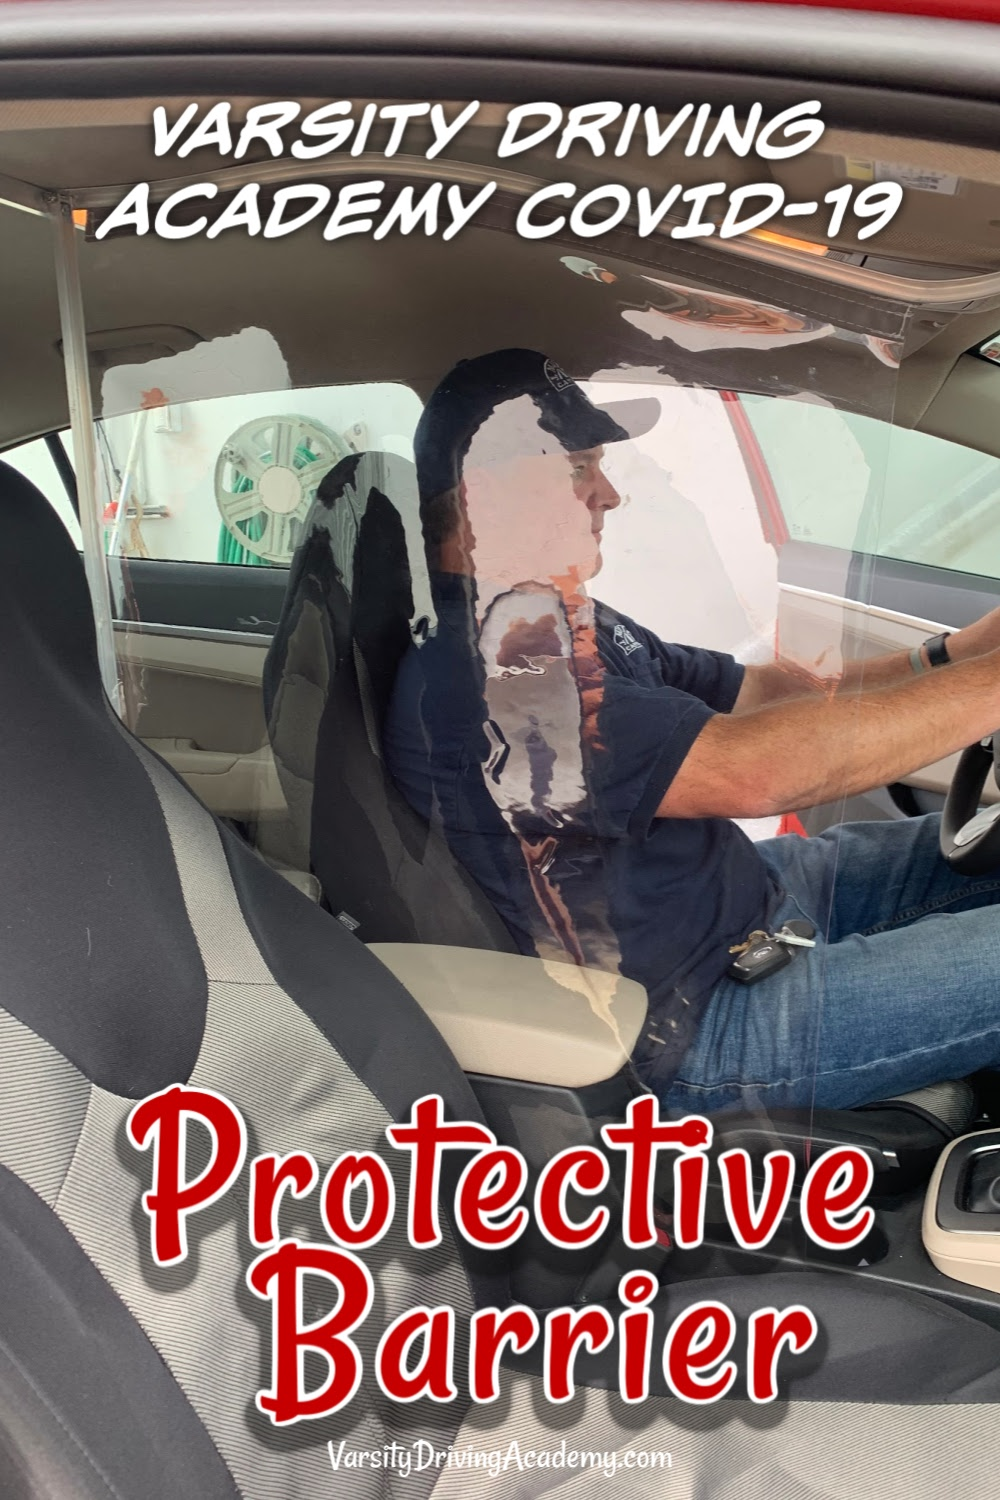 The Varsity Driving Academy COVID 19 protective barrier is one of the ways things are changing to help keep you and the trainers safer.